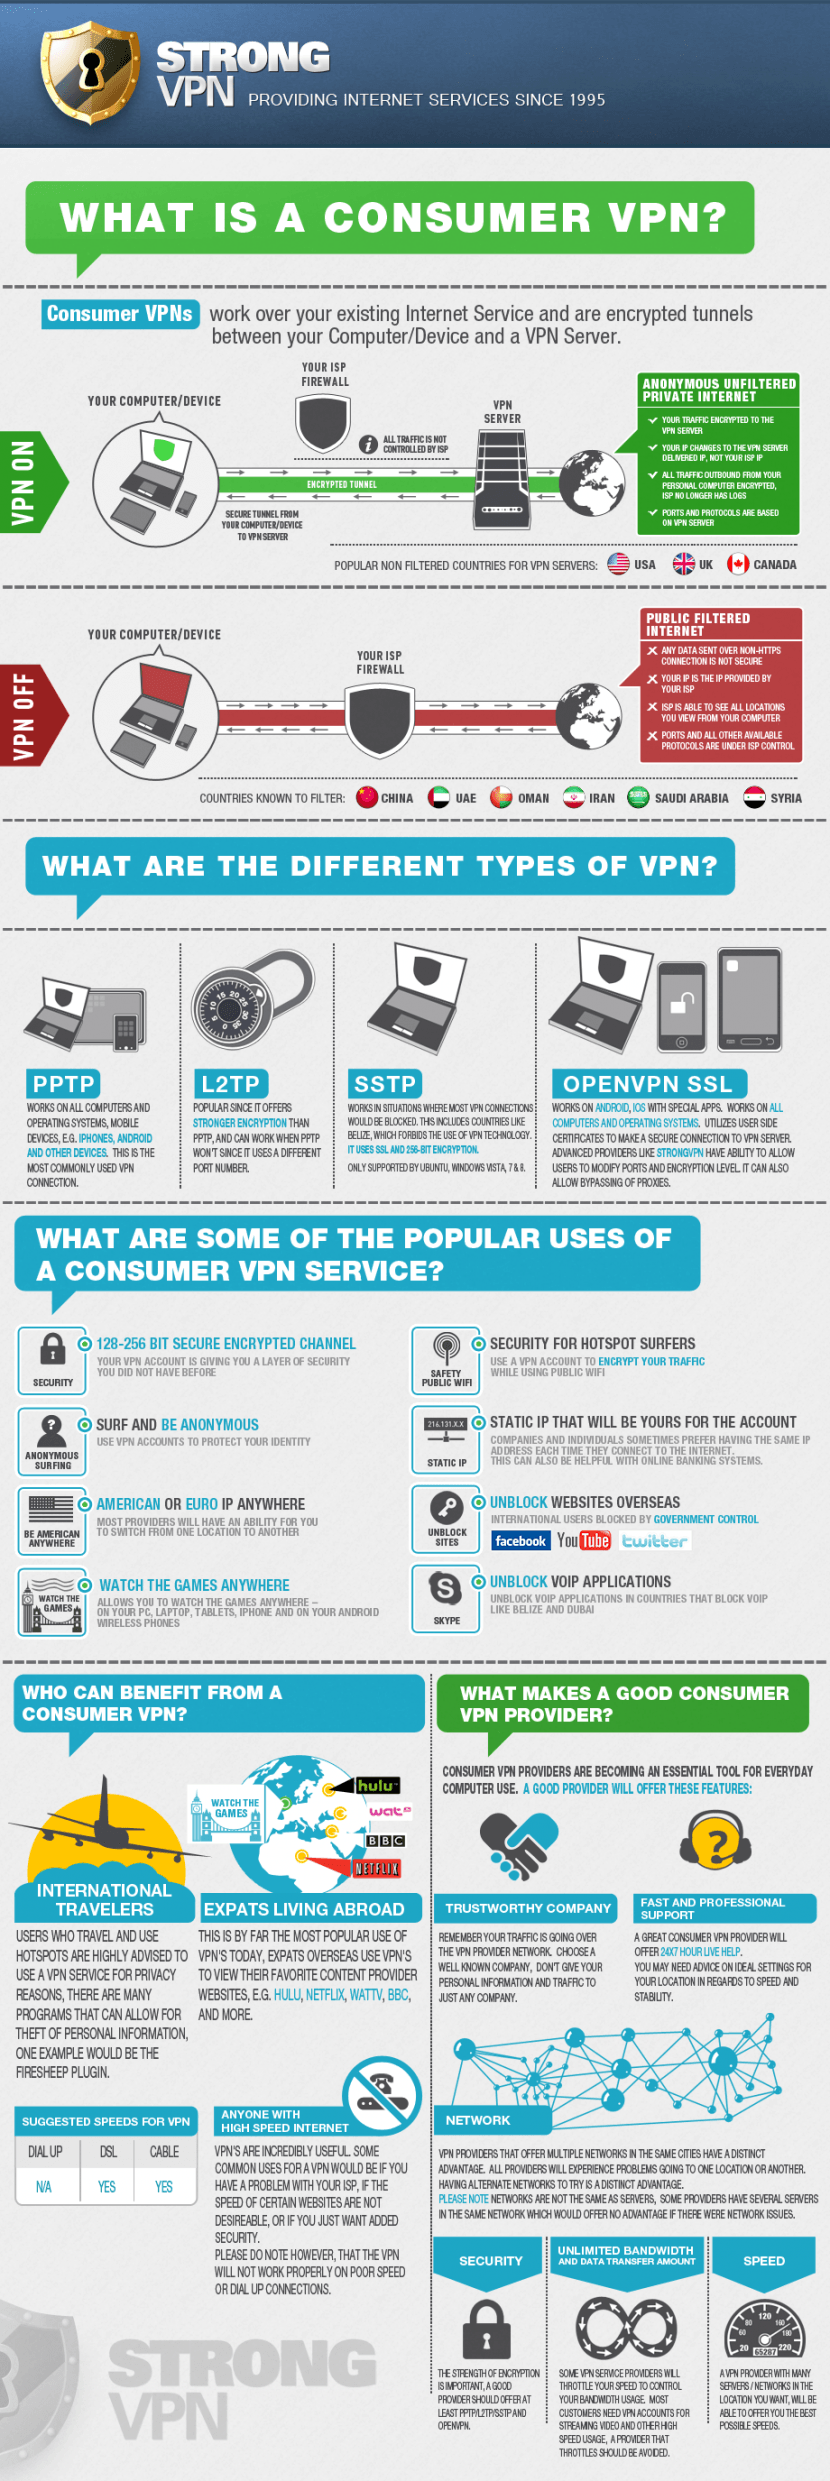 What is a Consumer VPN?